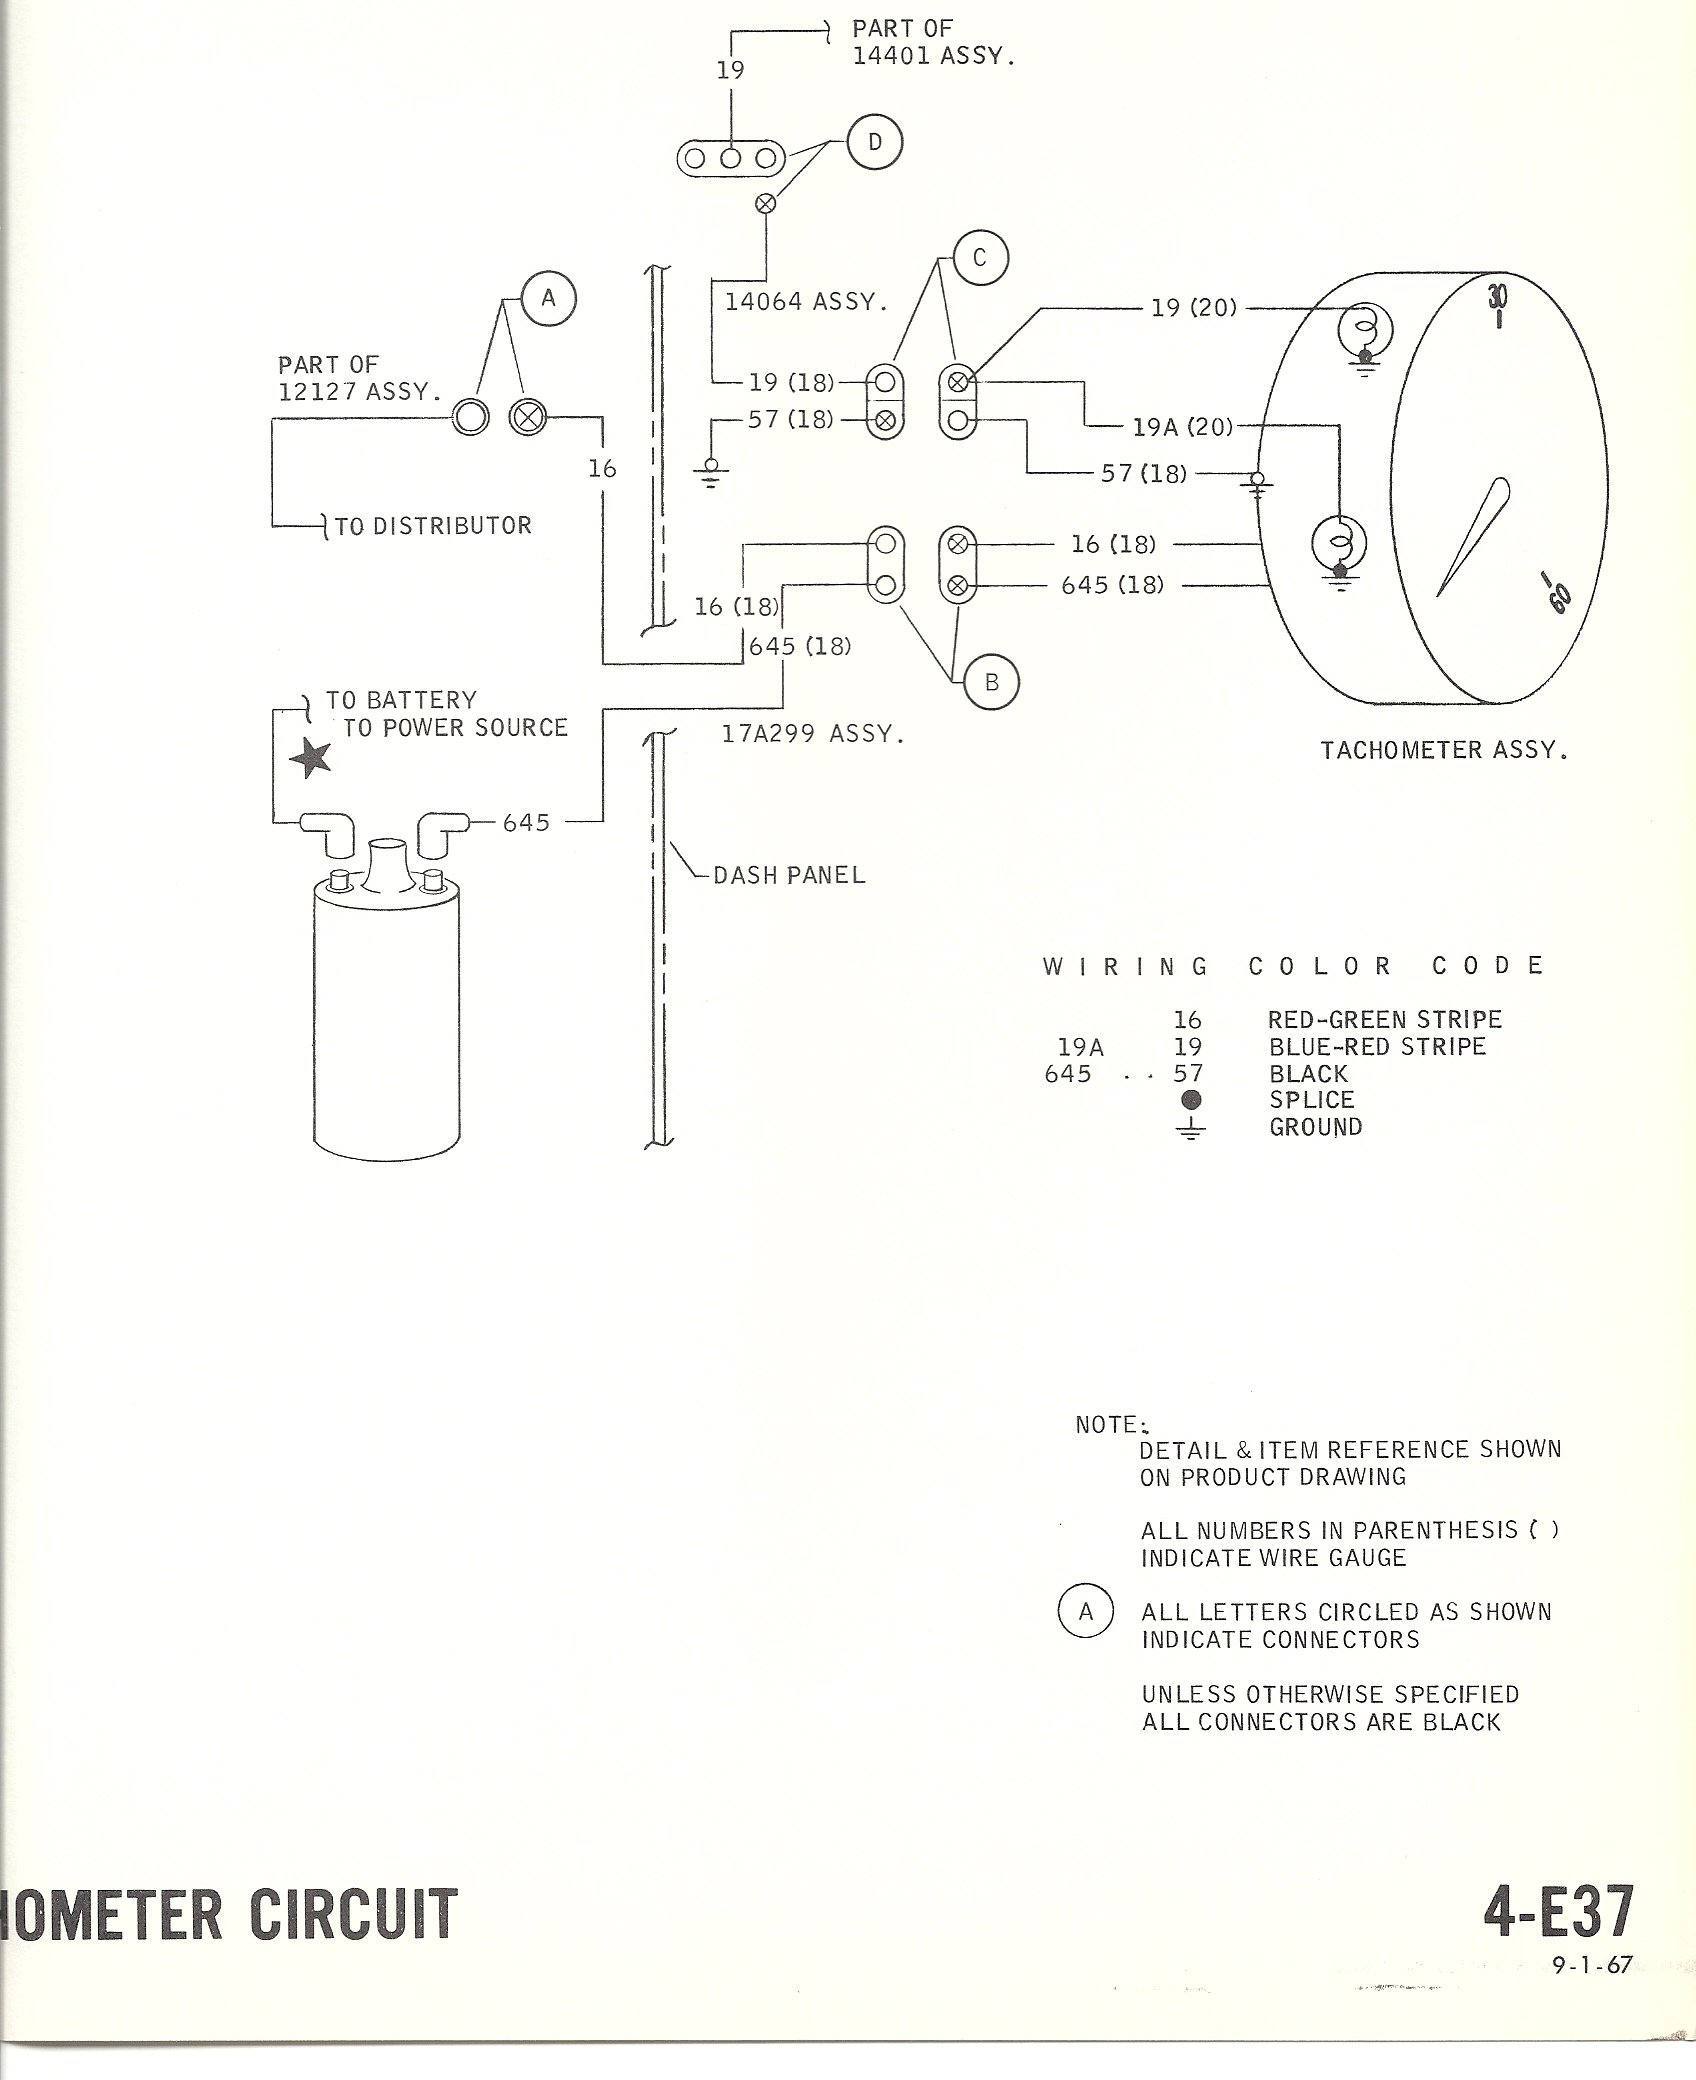 1968 Amx Tachometer Wiring Diagram Automotive 1937 Ford Ignition Trunk Light Diagrams Img Rh 46 Andreas Bolz De Mustang